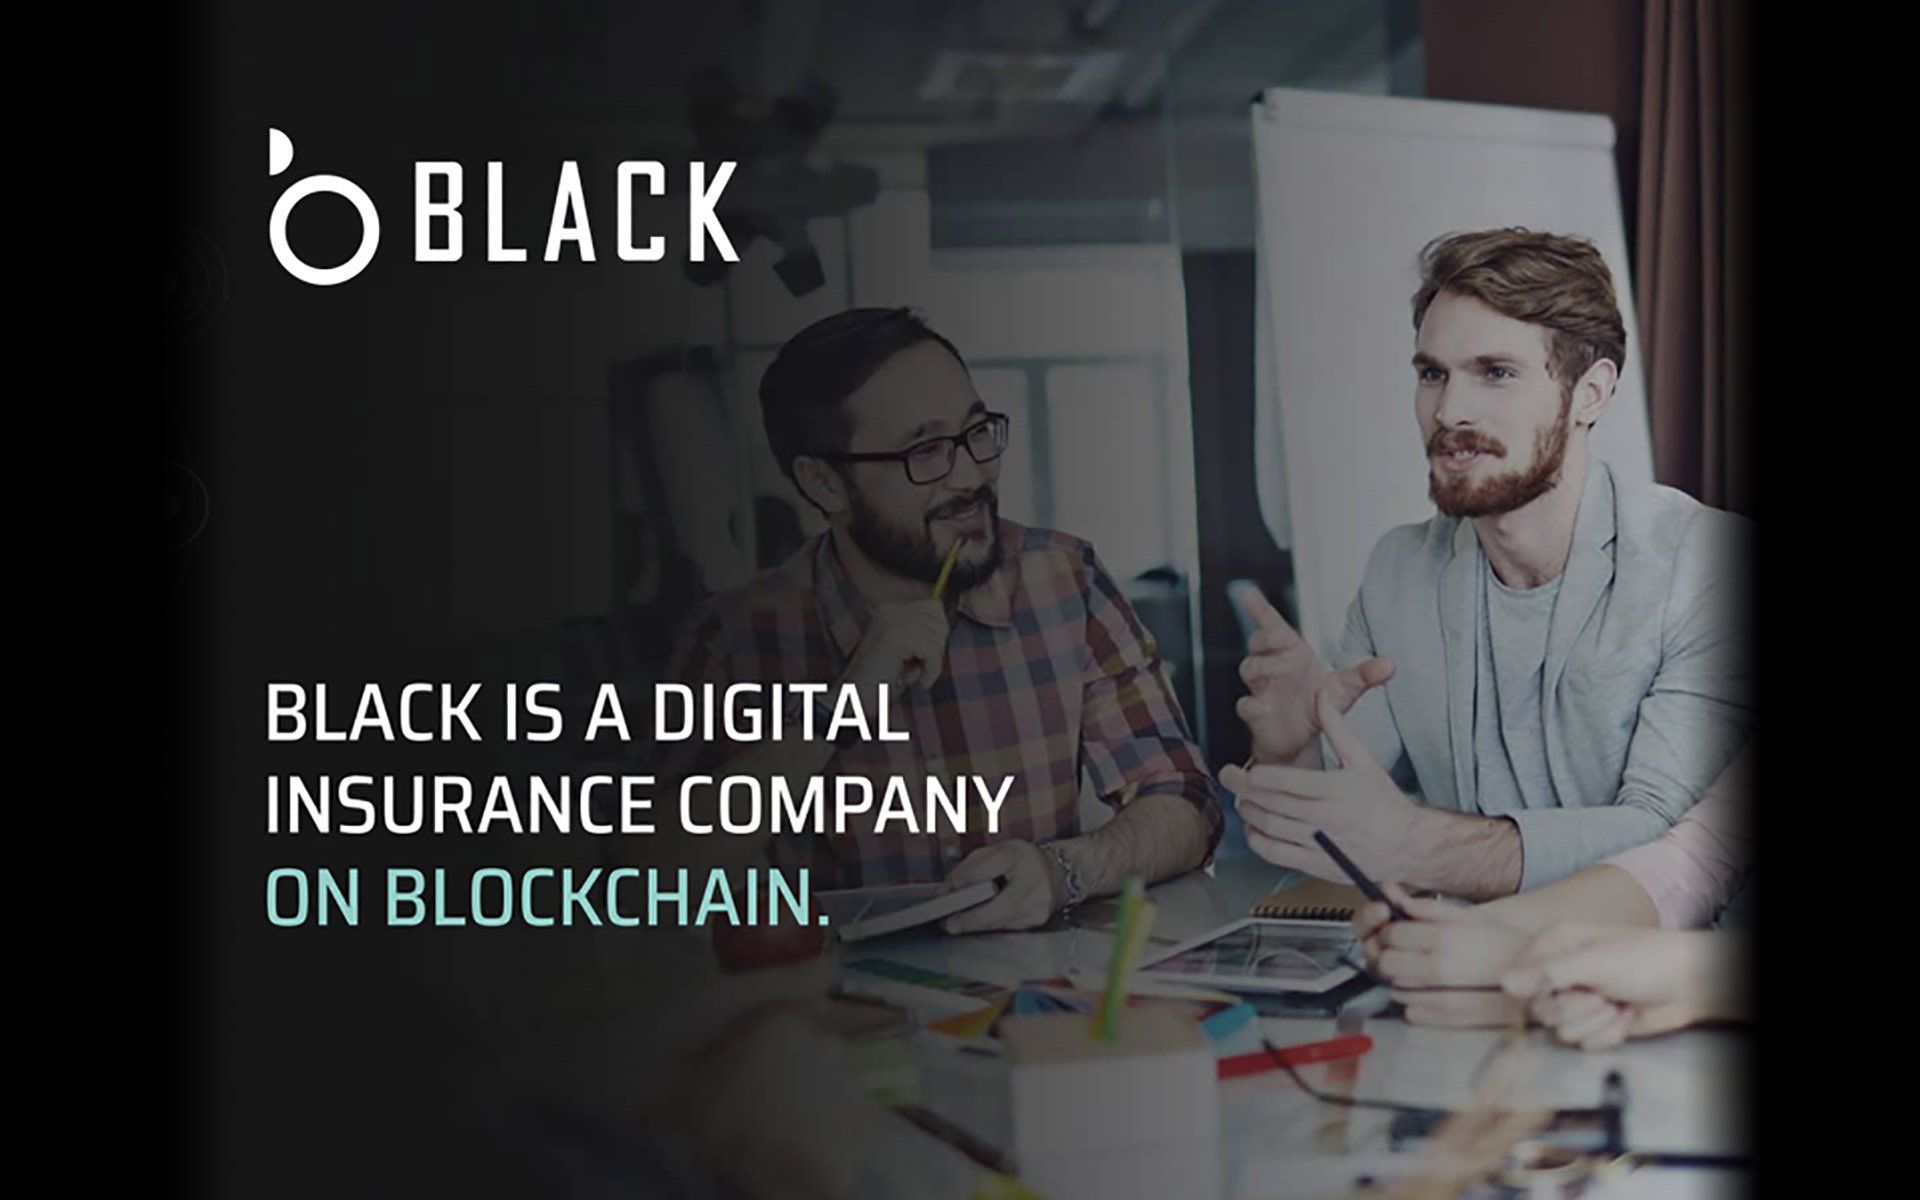 Digital Insurance Provider on Blockchain, Black Insurance Ropes in Professor Alex Norta as the Scientific Advisor